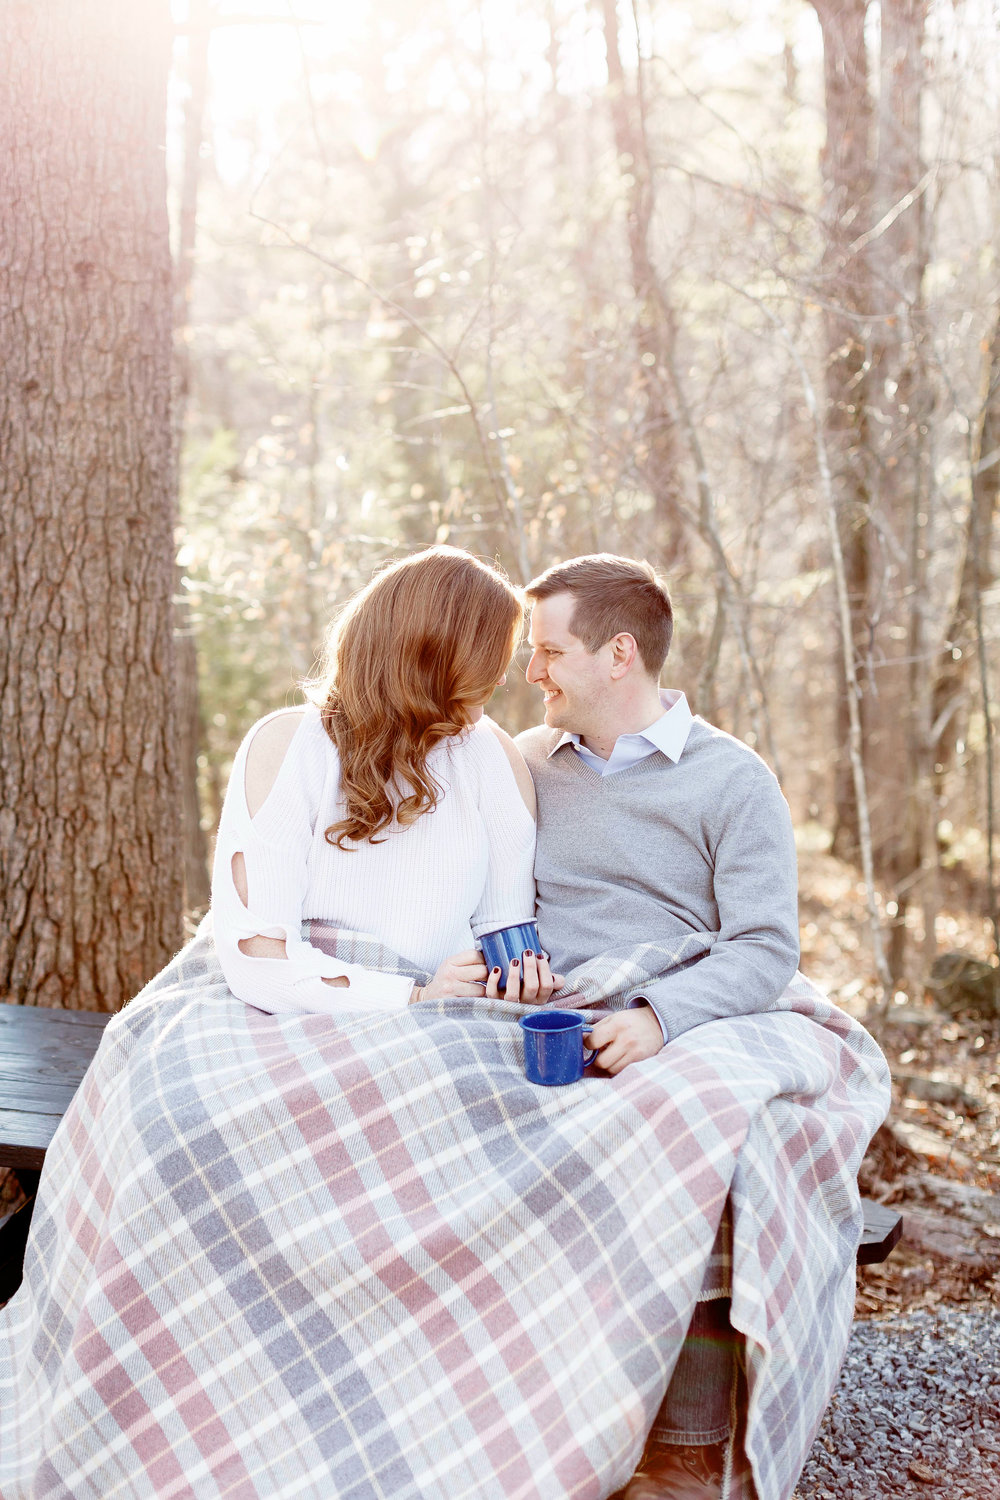 LaurenIan_Engagement_Session_Getaway__OP28418-Edit.jpg